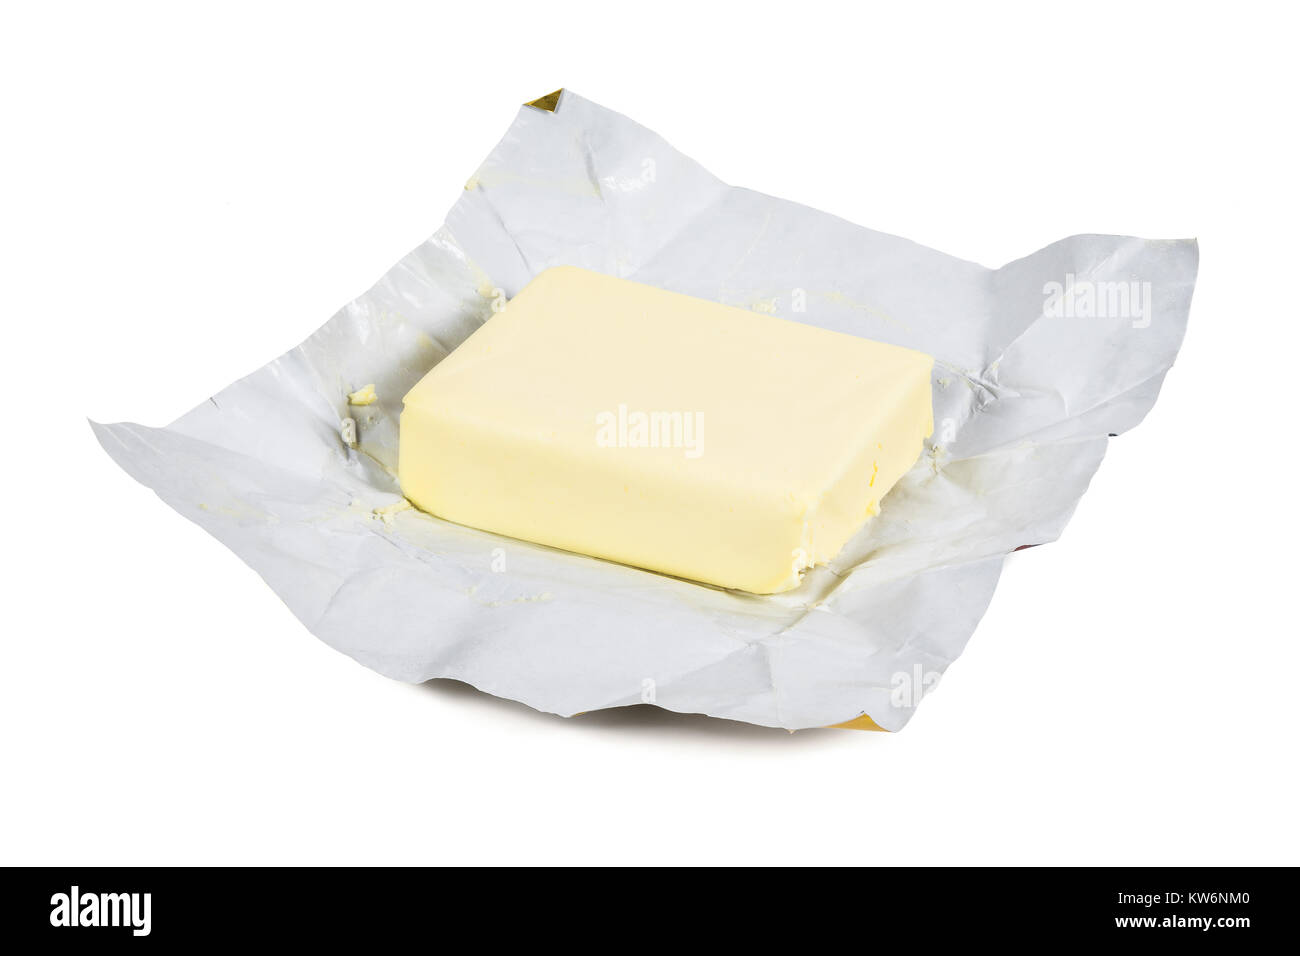 Piece of fresh butter isolated on white background with clipping path - Stock Image